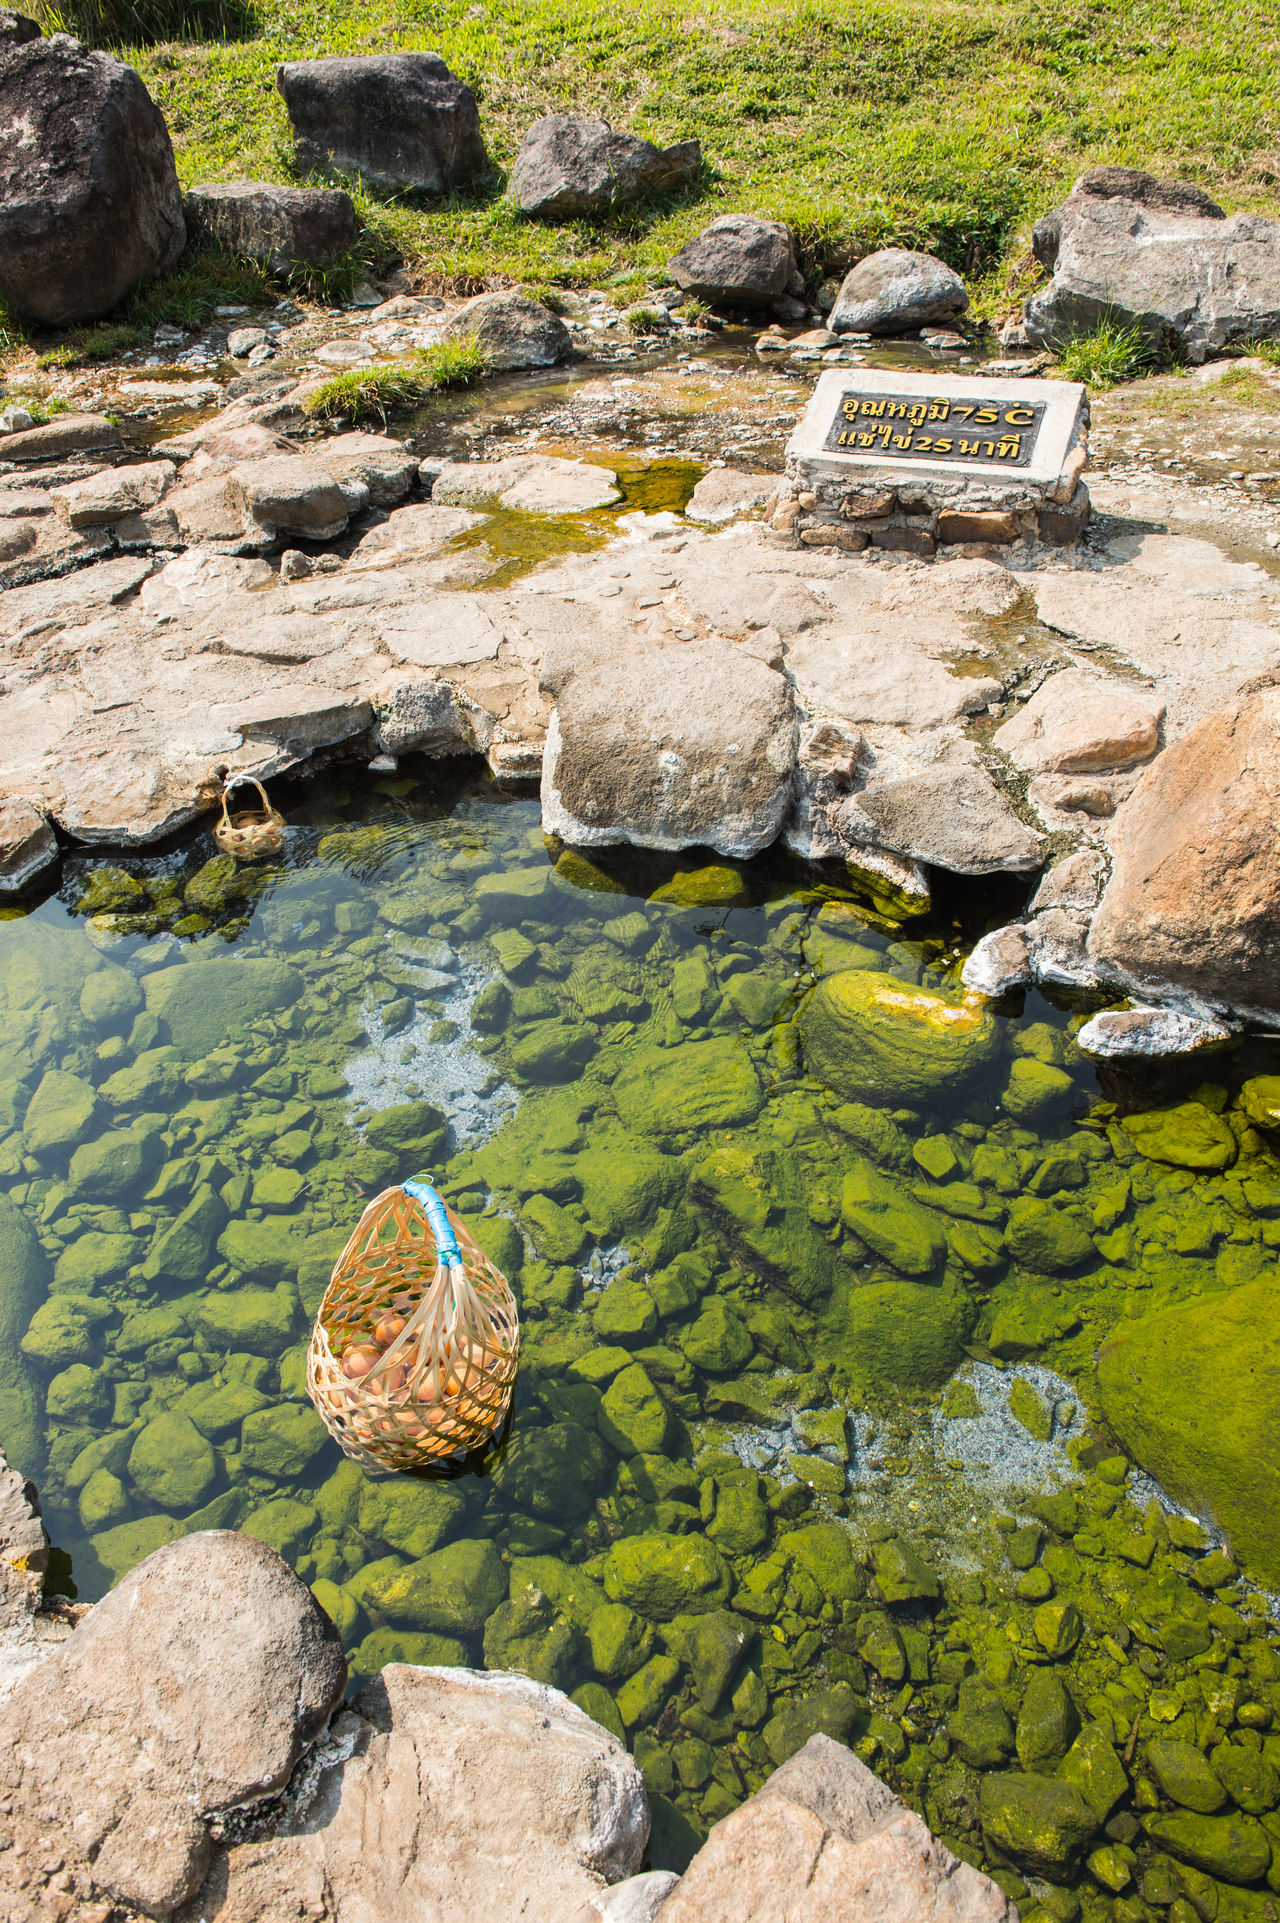 Boil egg in hot springs Basket Beauty In Nature Day Egg Floating On Water Food Green Ground Group Of Objects Healthy Eating Healthy Food High Angle View Hot Spring Natural Nature No People Object Onsen Onsen Egg Outdoors Sunlight Transparent Travel Water